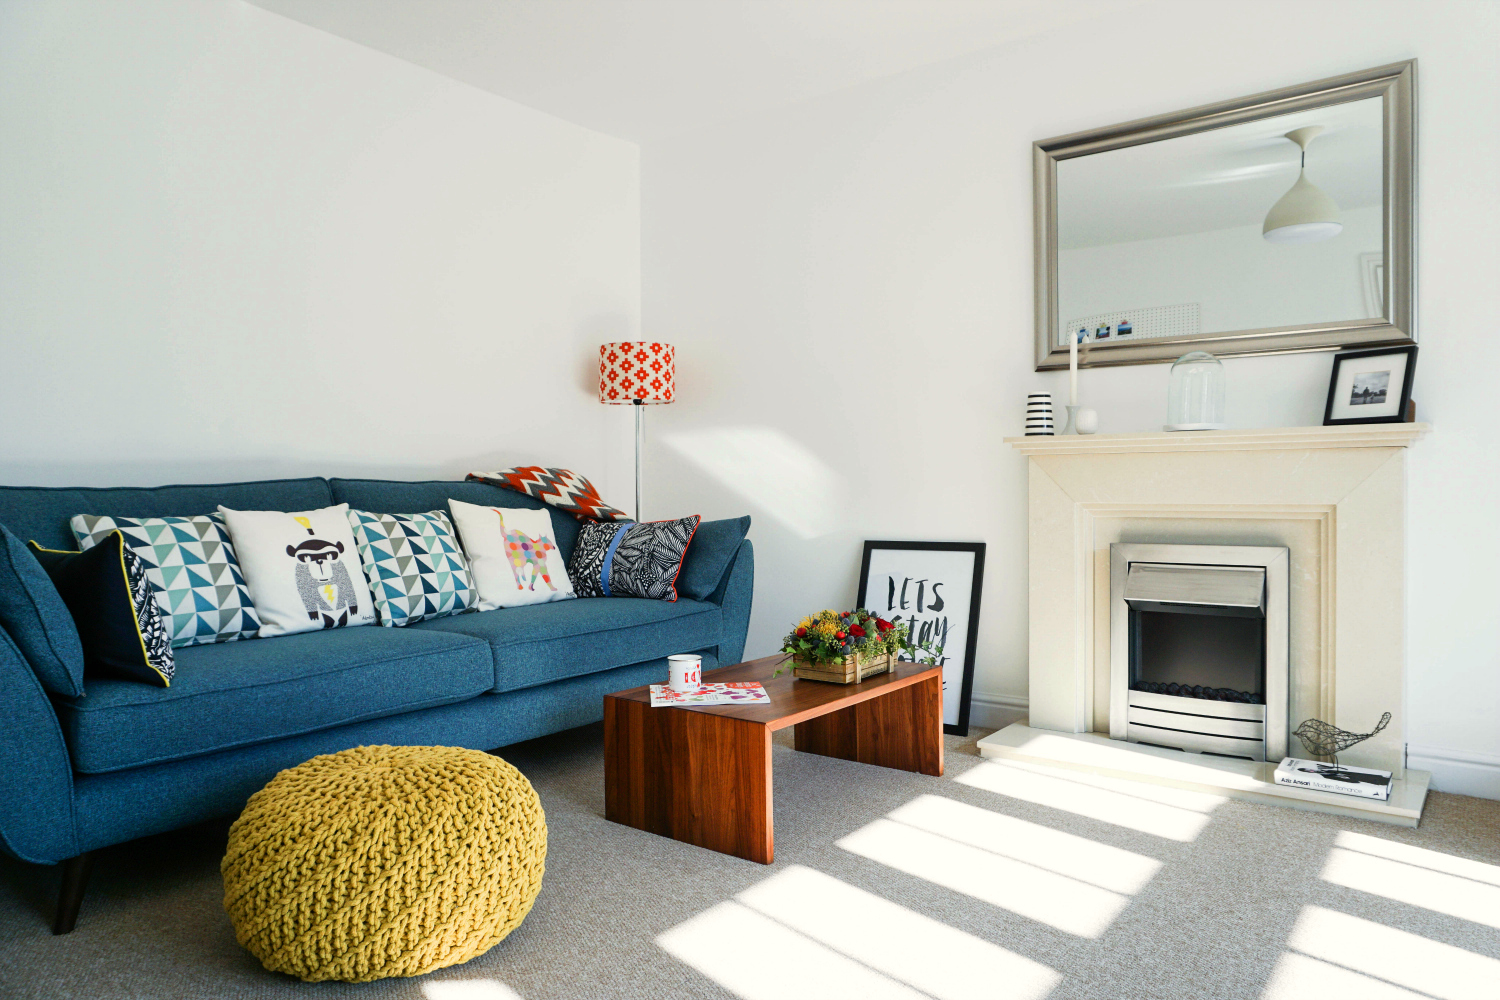 The Ordinary Lovely: A colourful living room